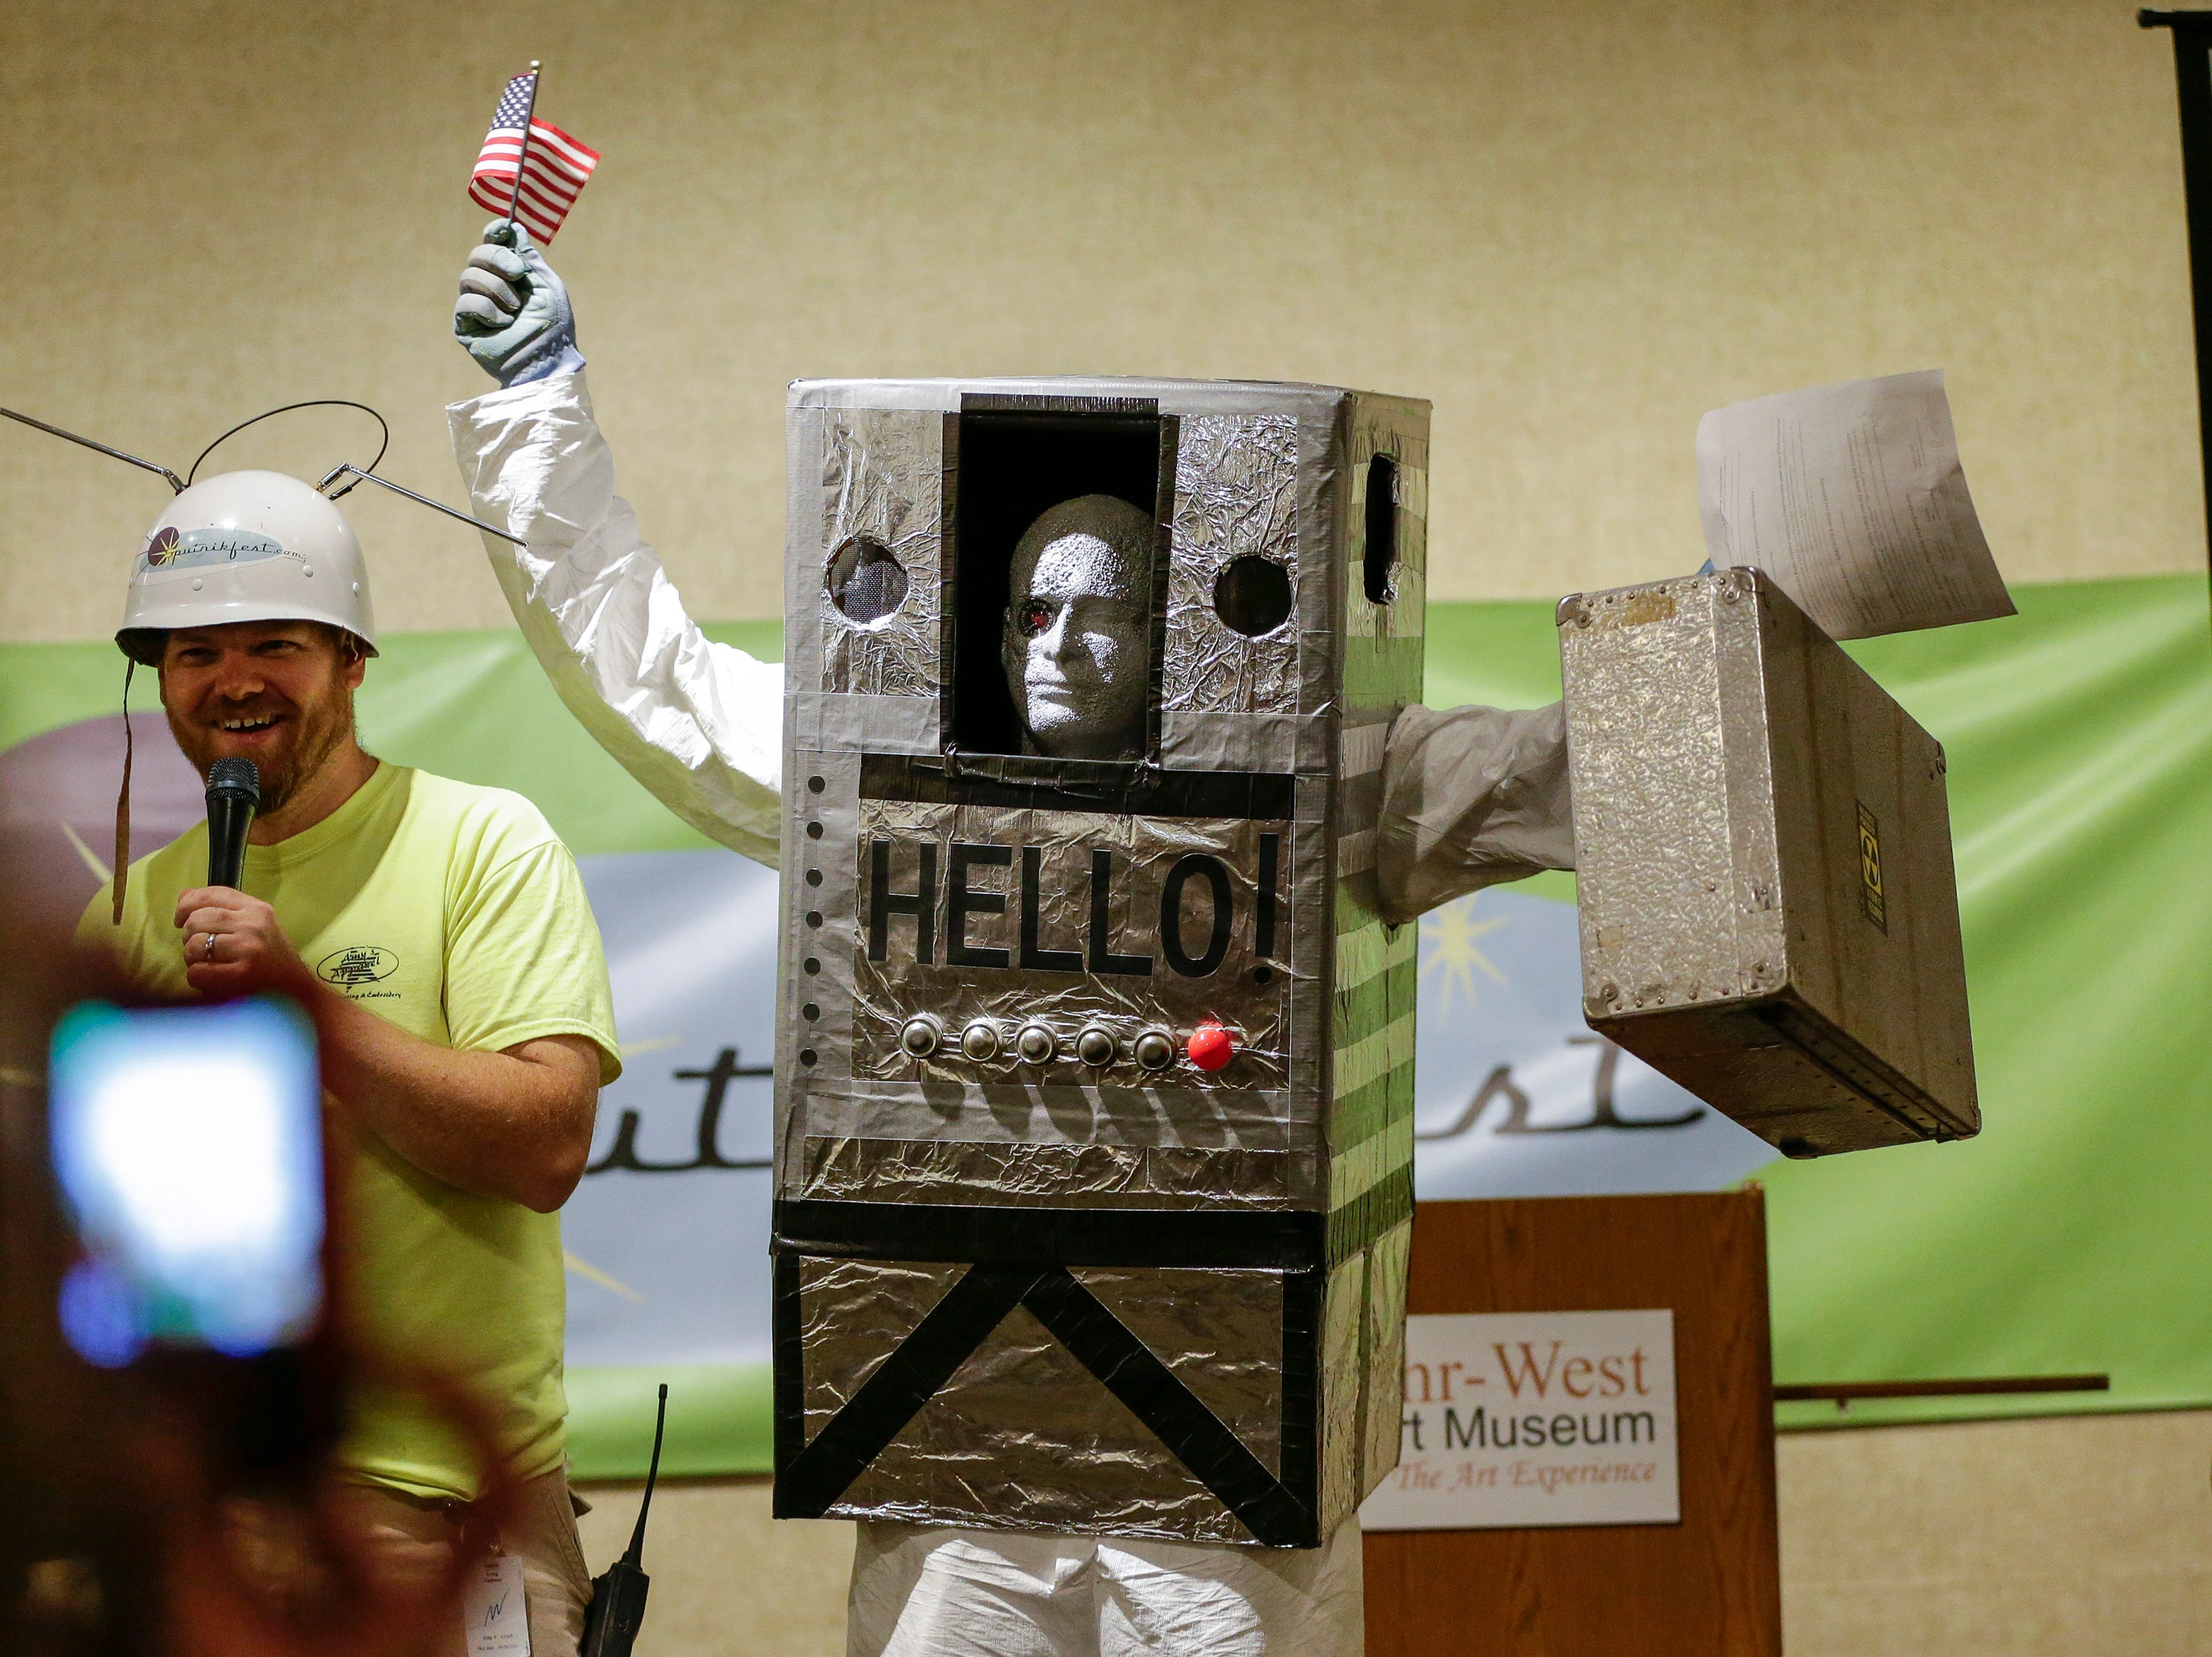 Martin Morante of Random Lake, dressed as an alien space traveller, reacts to winning the Sputnikfest costume contest at the Rahr-West Museum Saturday, September 8, 2018, in Manitowoc, Wis. Josh Clark/USA TODAY NETWORK-Wisconsin